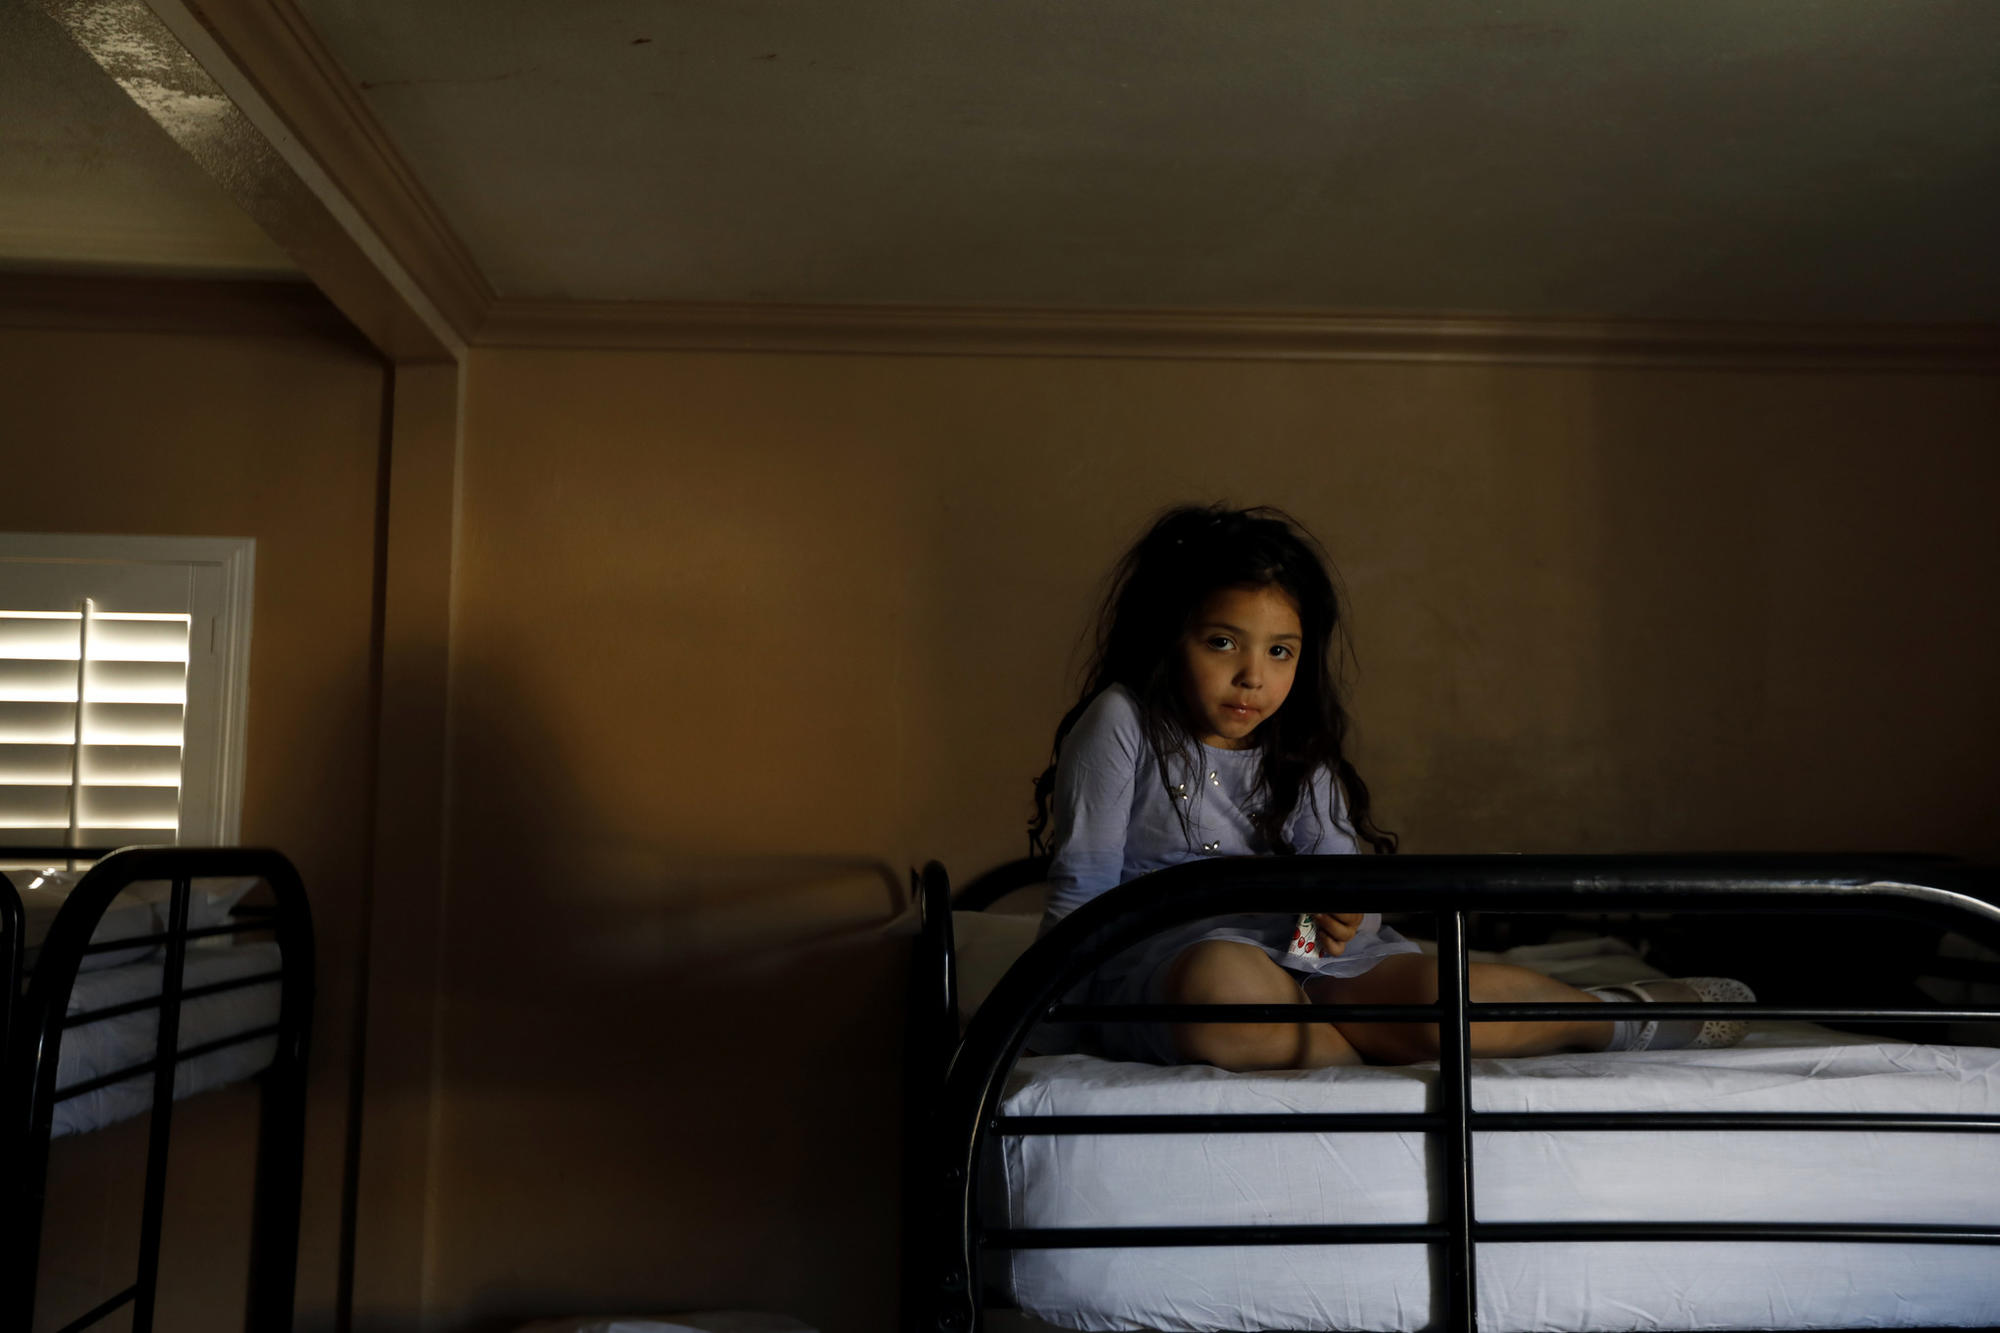 Kimberly on a bunk bed